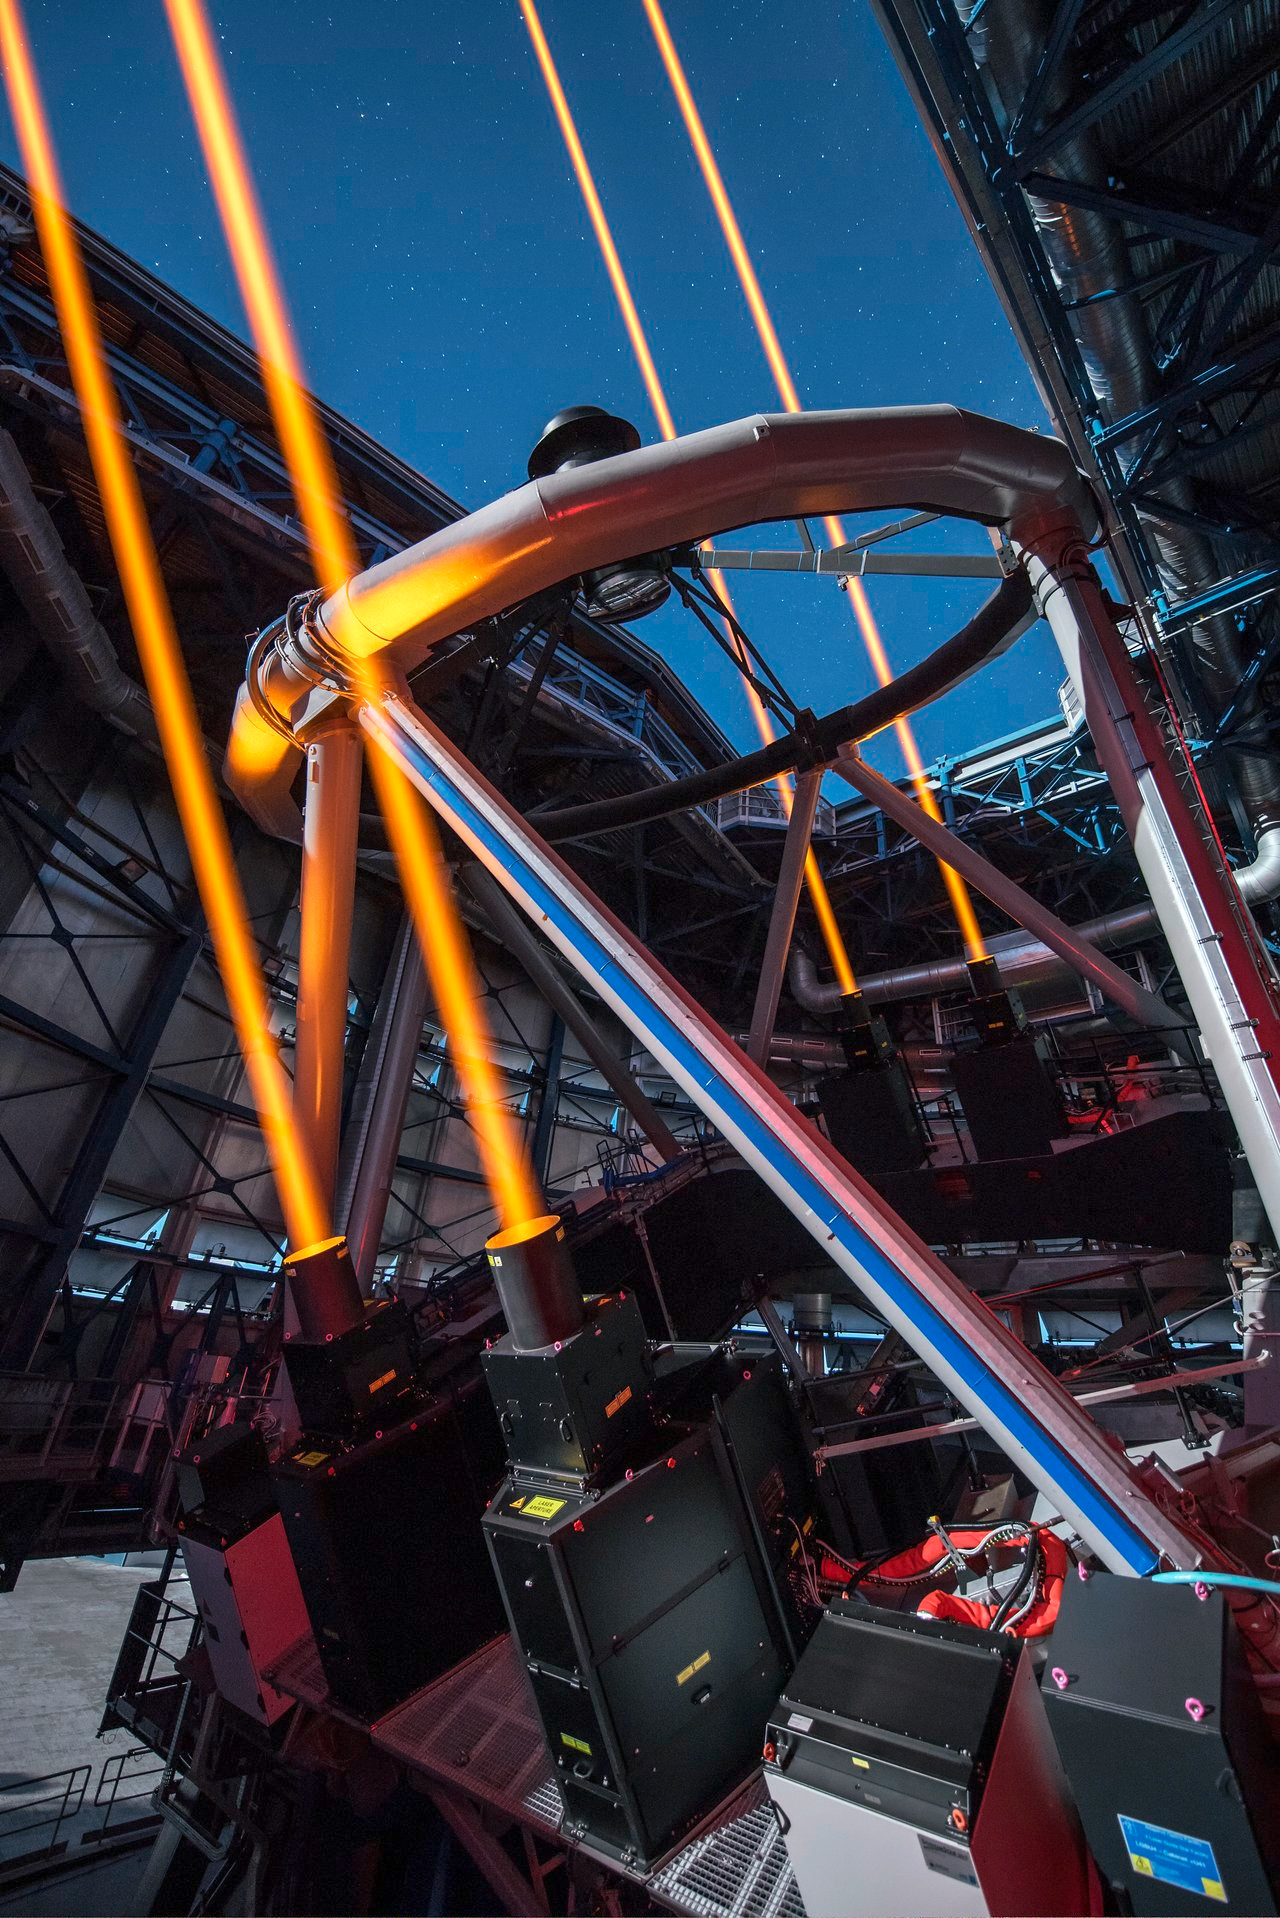 This image shows the four 30-centimetre diameter, 22-watt beams emerging from the new 589 nm laser system on Unit Telescope 4 of the VLT. Image credit: ESO/G. Hüdepohl.